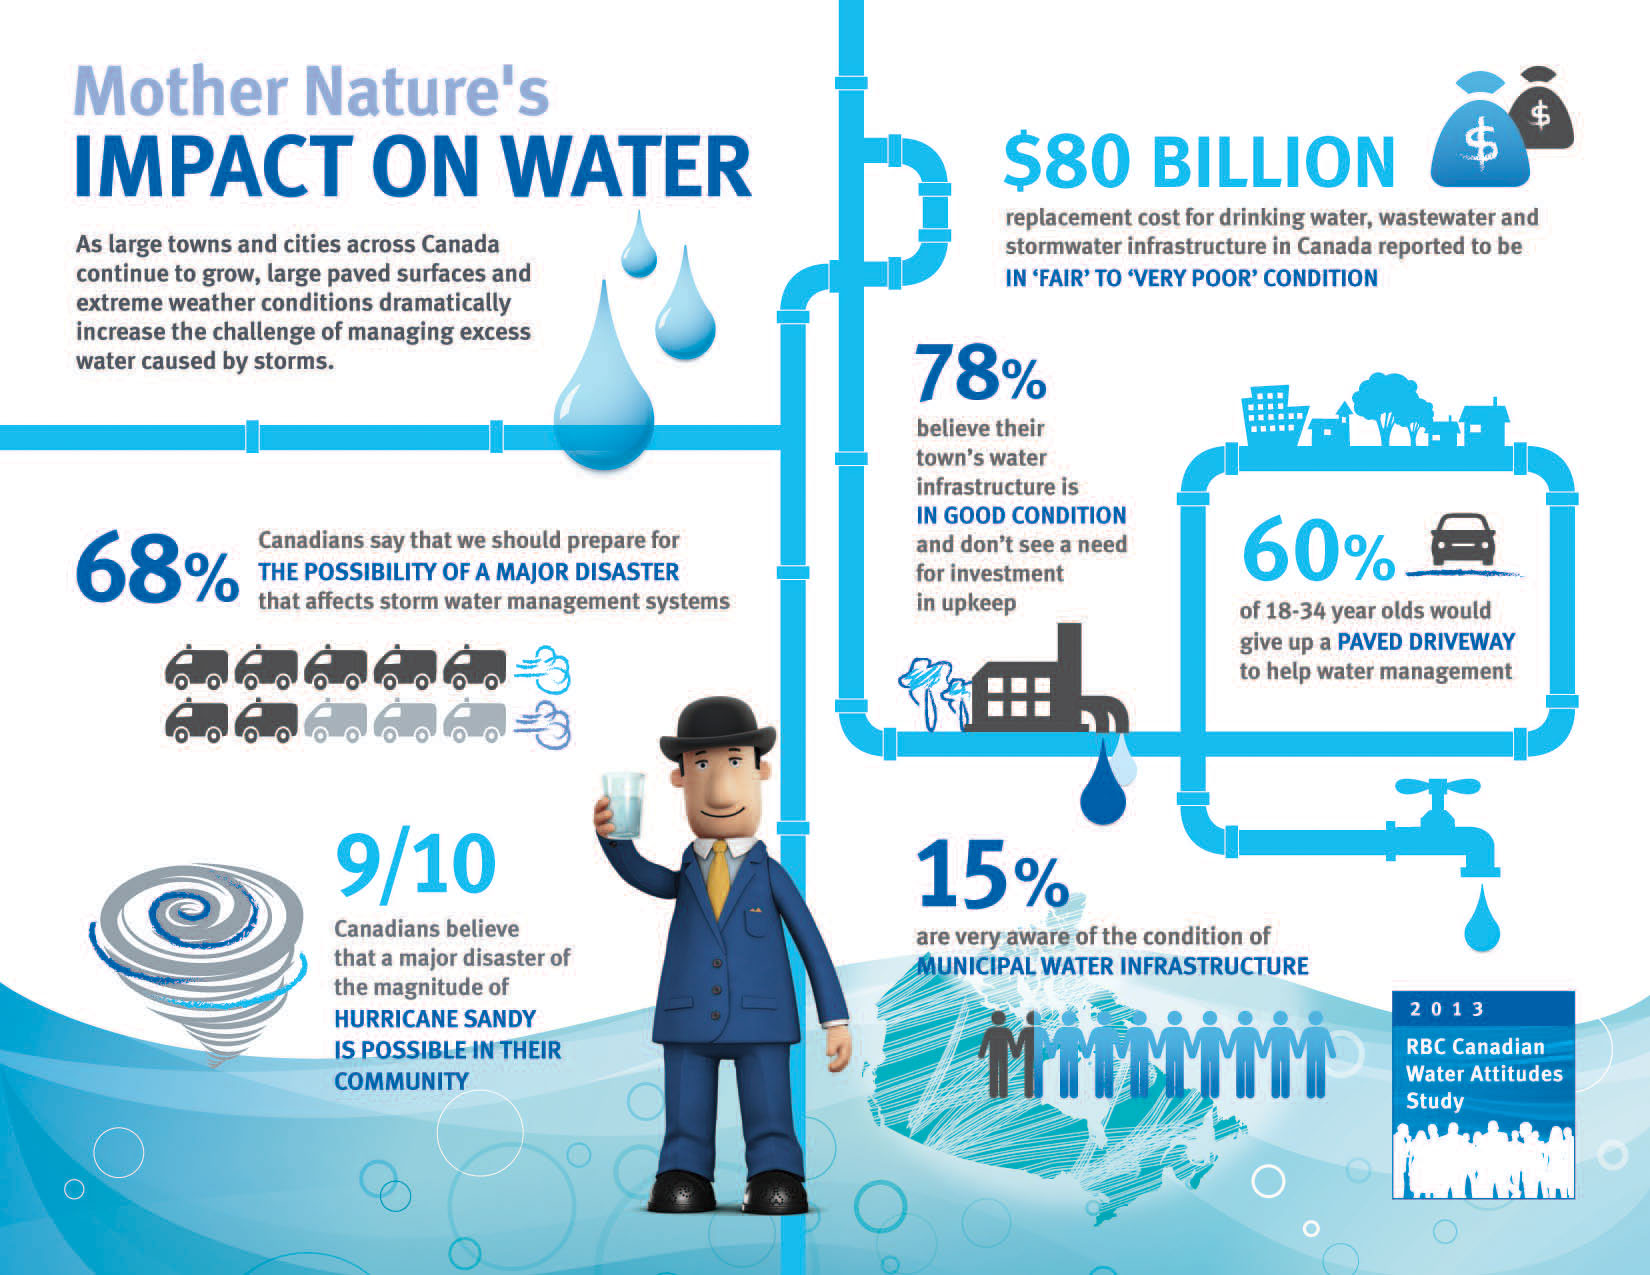 Rbc 2013 Rbc Canadian Water Attitudes Study The